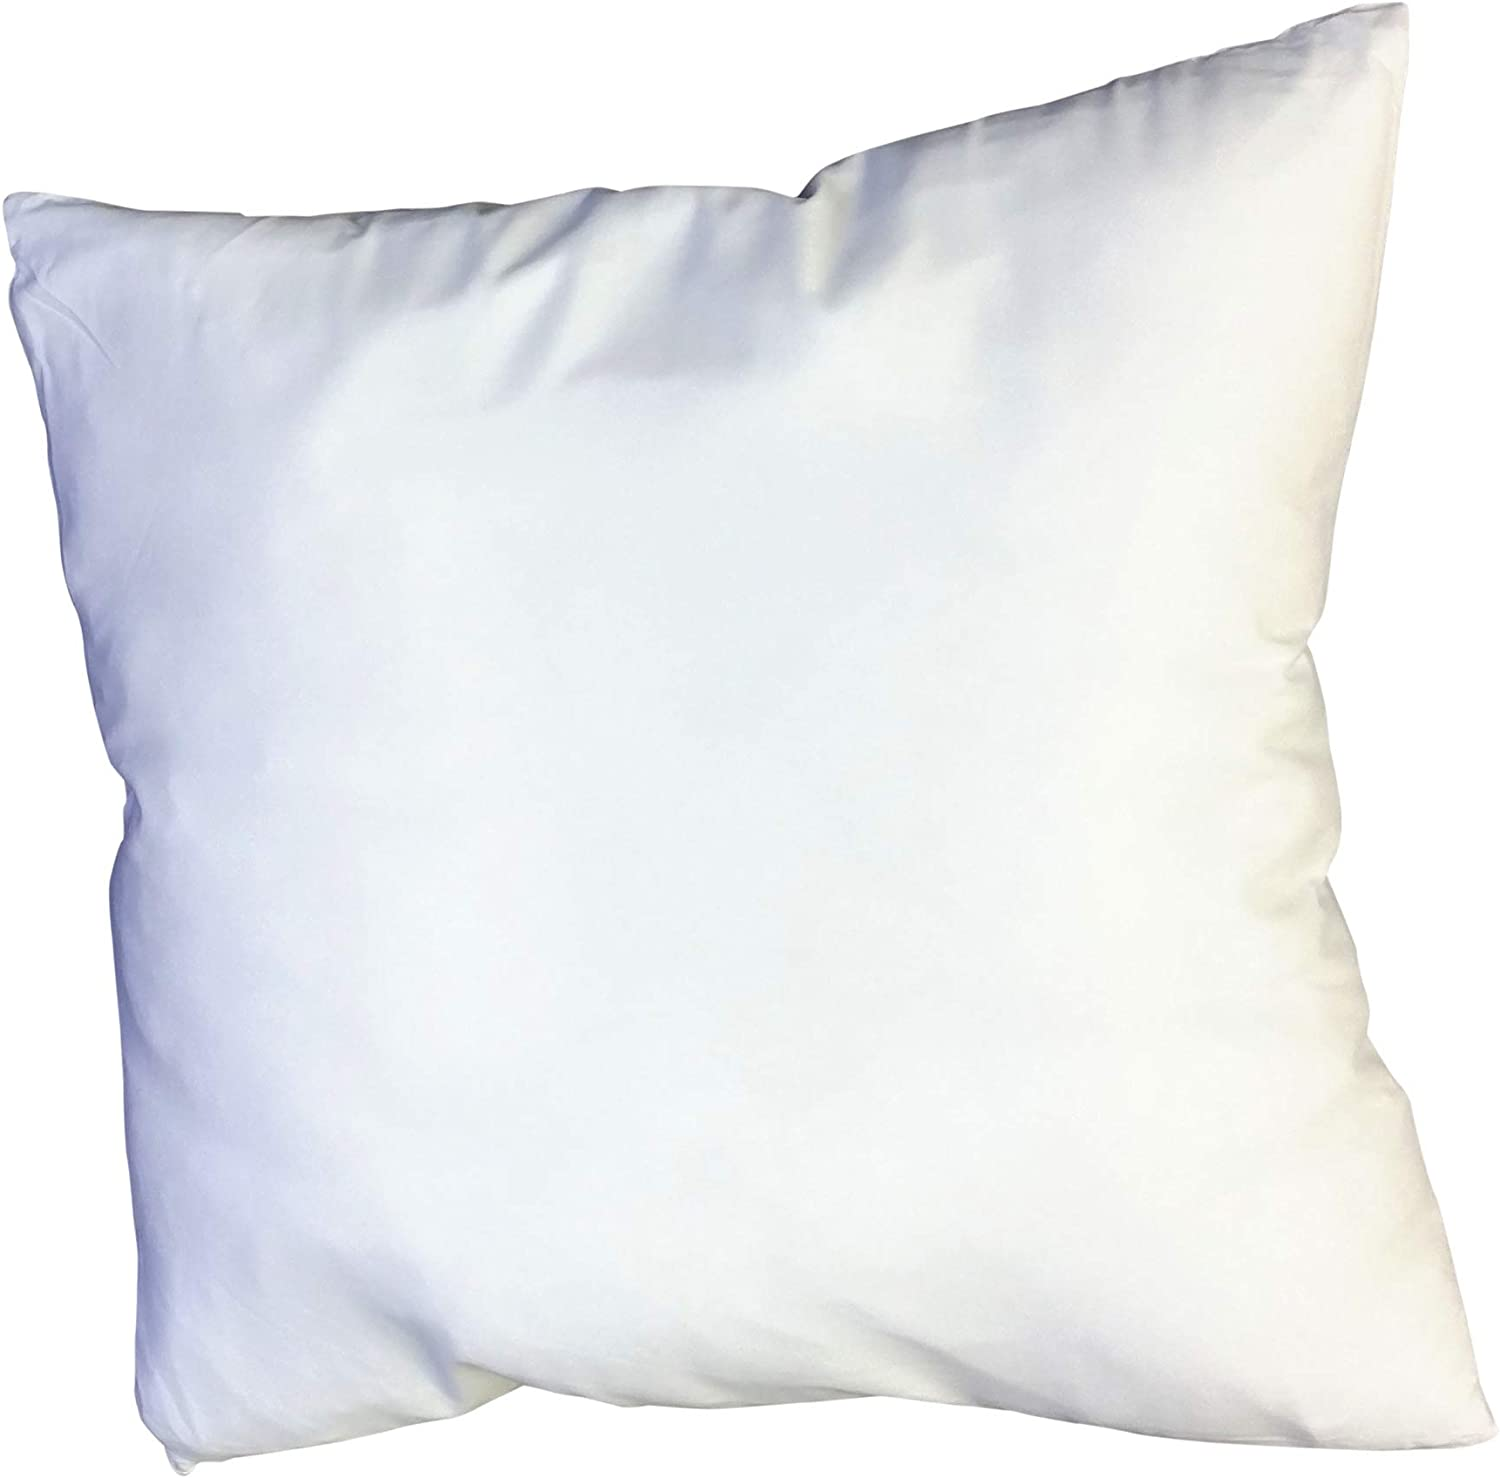 Web Linens Inc Set of 2-18 x 18-95% Feather 5% Down Pillow Insert - 210 TC - Down Proof Shell - Exclusively by Blowout Bedding RN# 142035